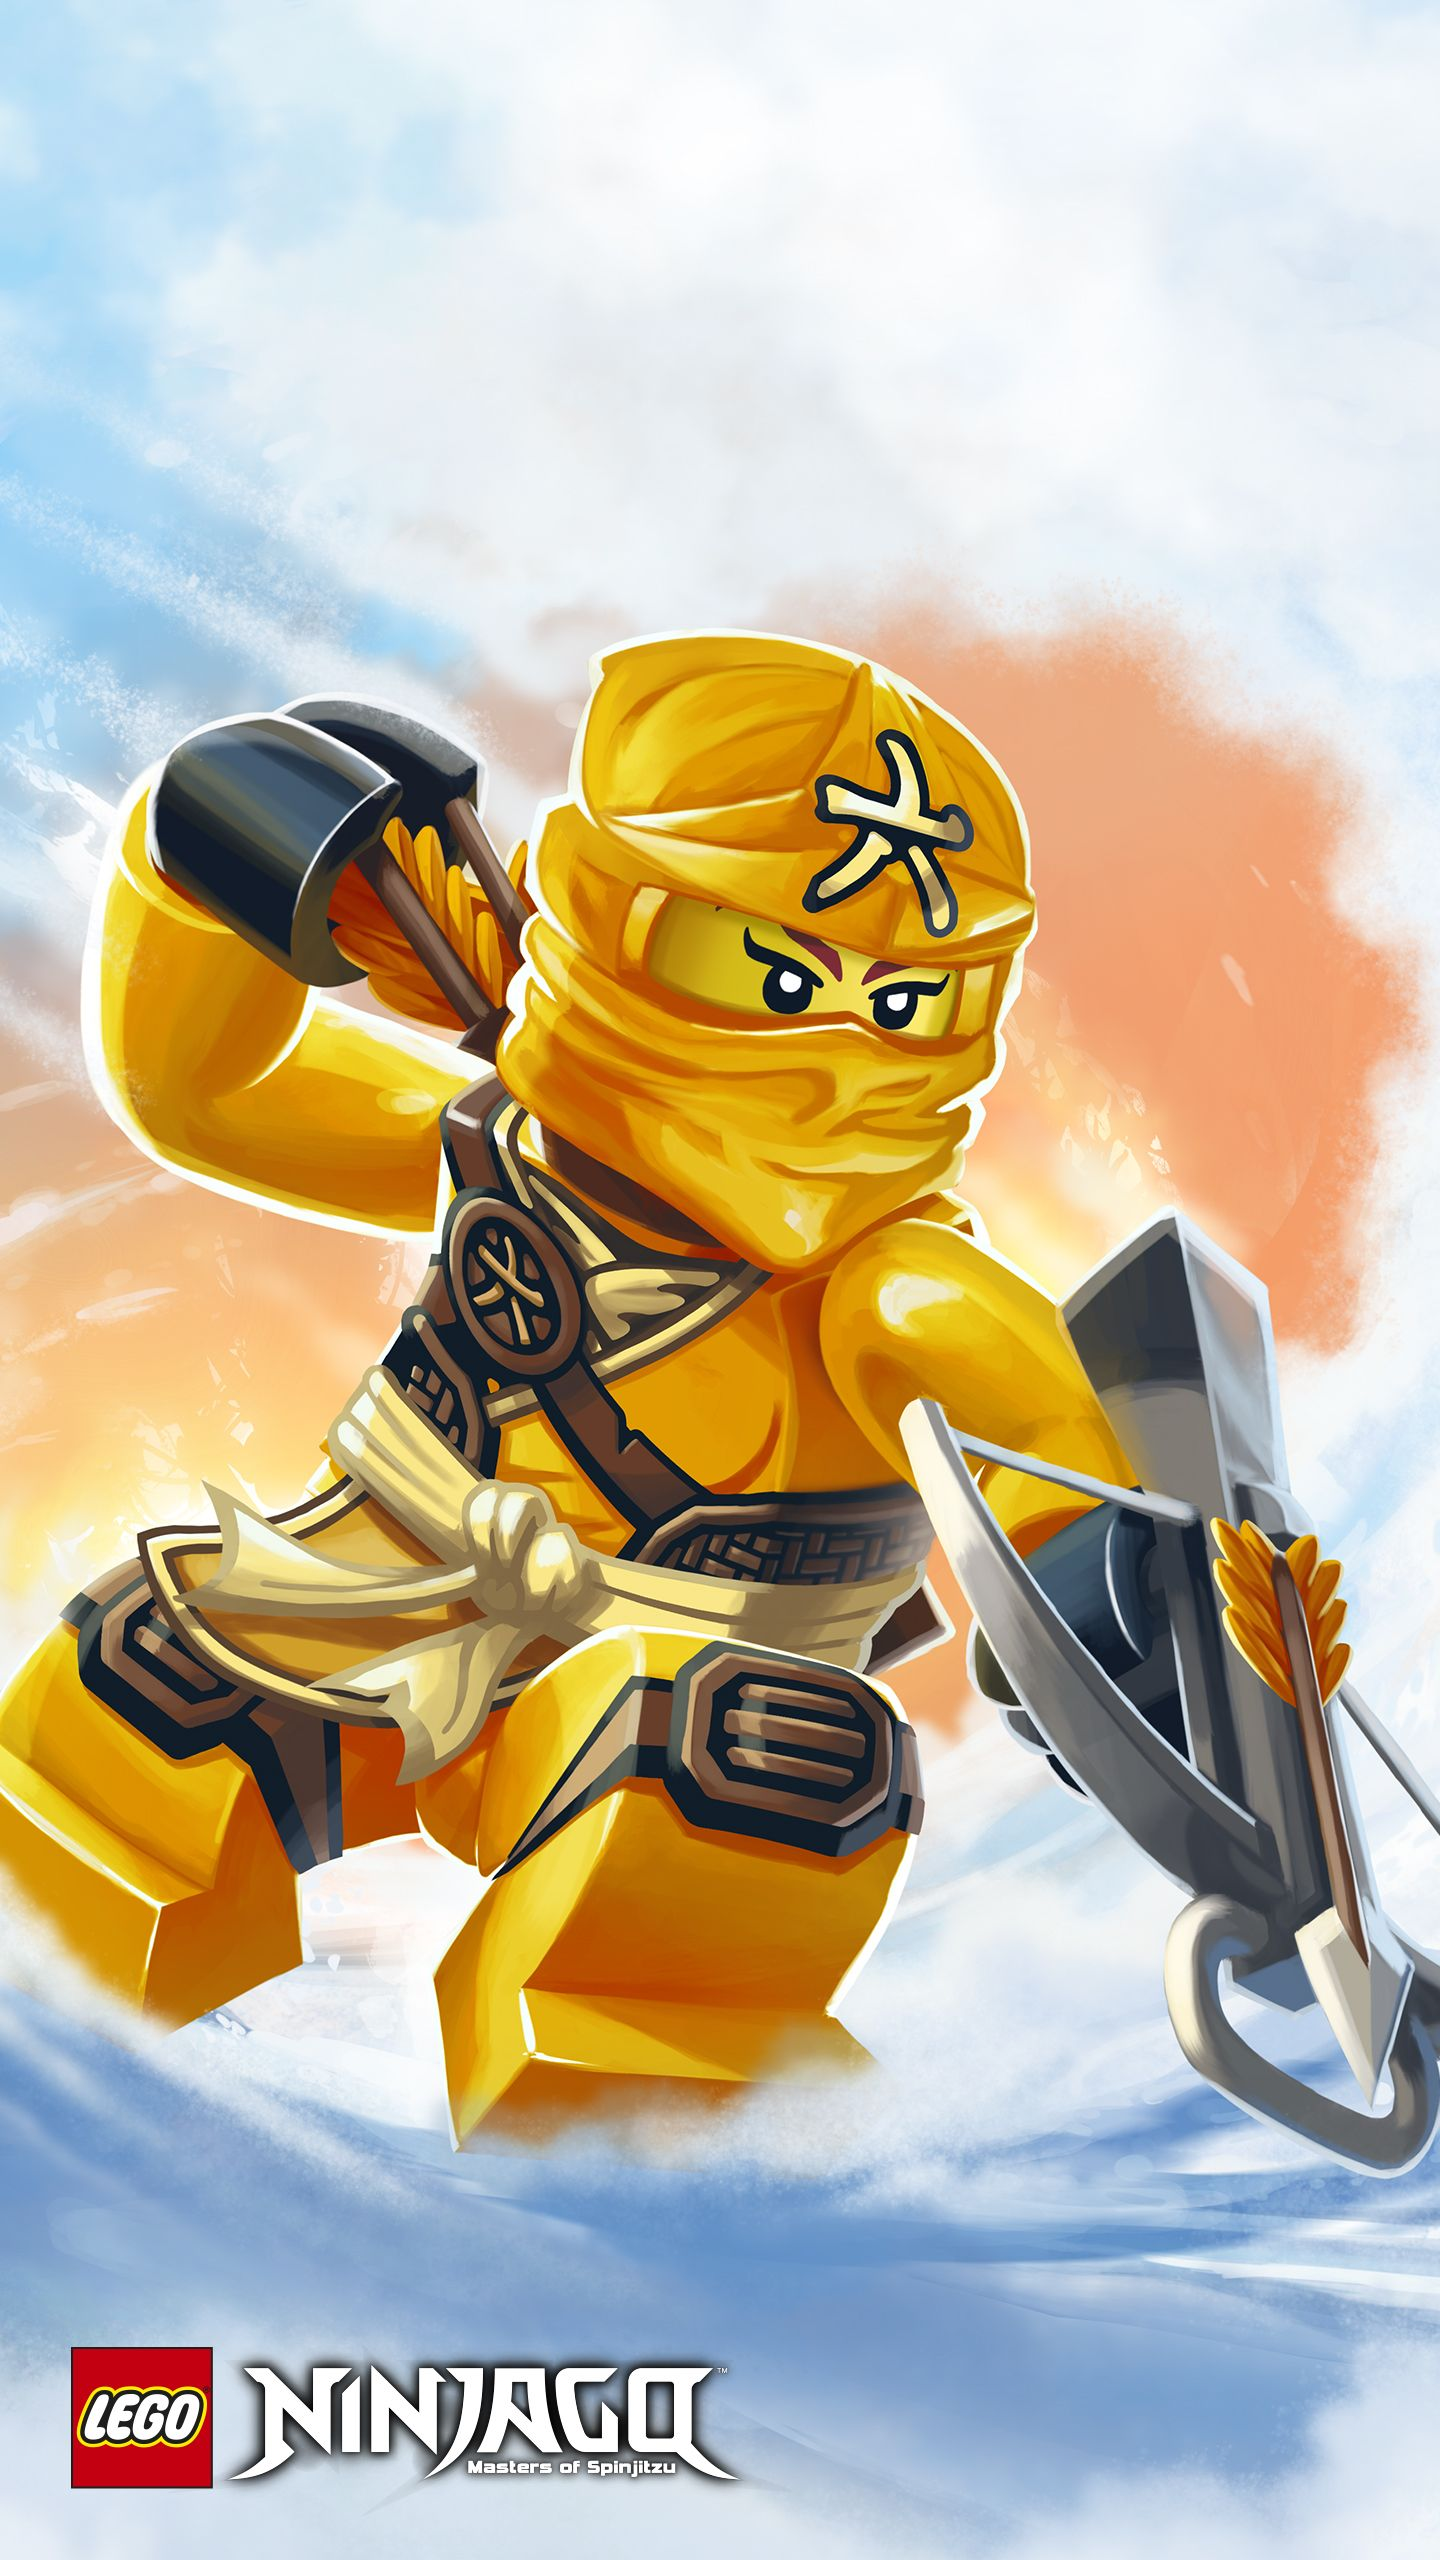 Ninjago Chen Chen And Flame By Squira130 Cool Art Pinterest Chen